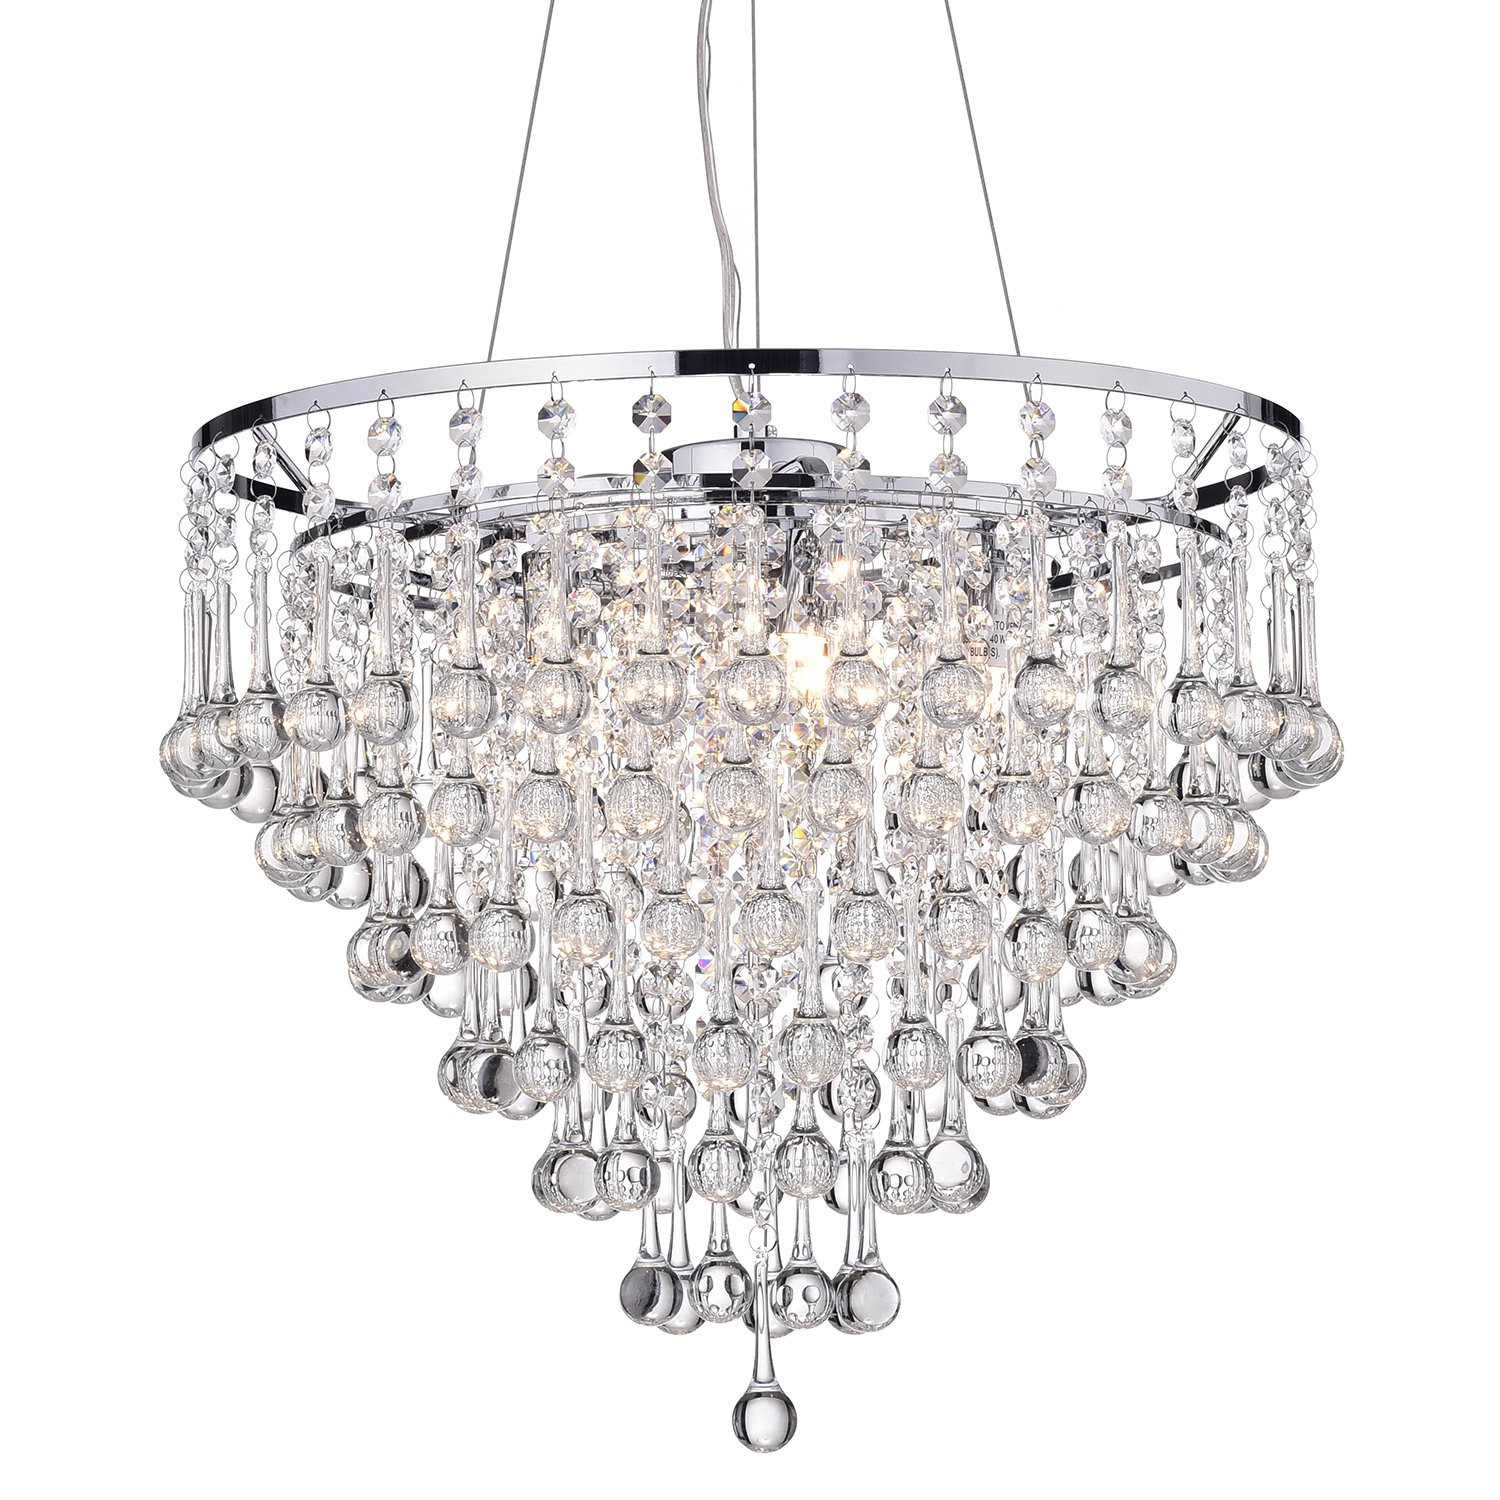 Hera 5-Light Crystal Chandelier pertaining to Aldgate 4-Light Crystal Chandeliers (Image 15 of 30)